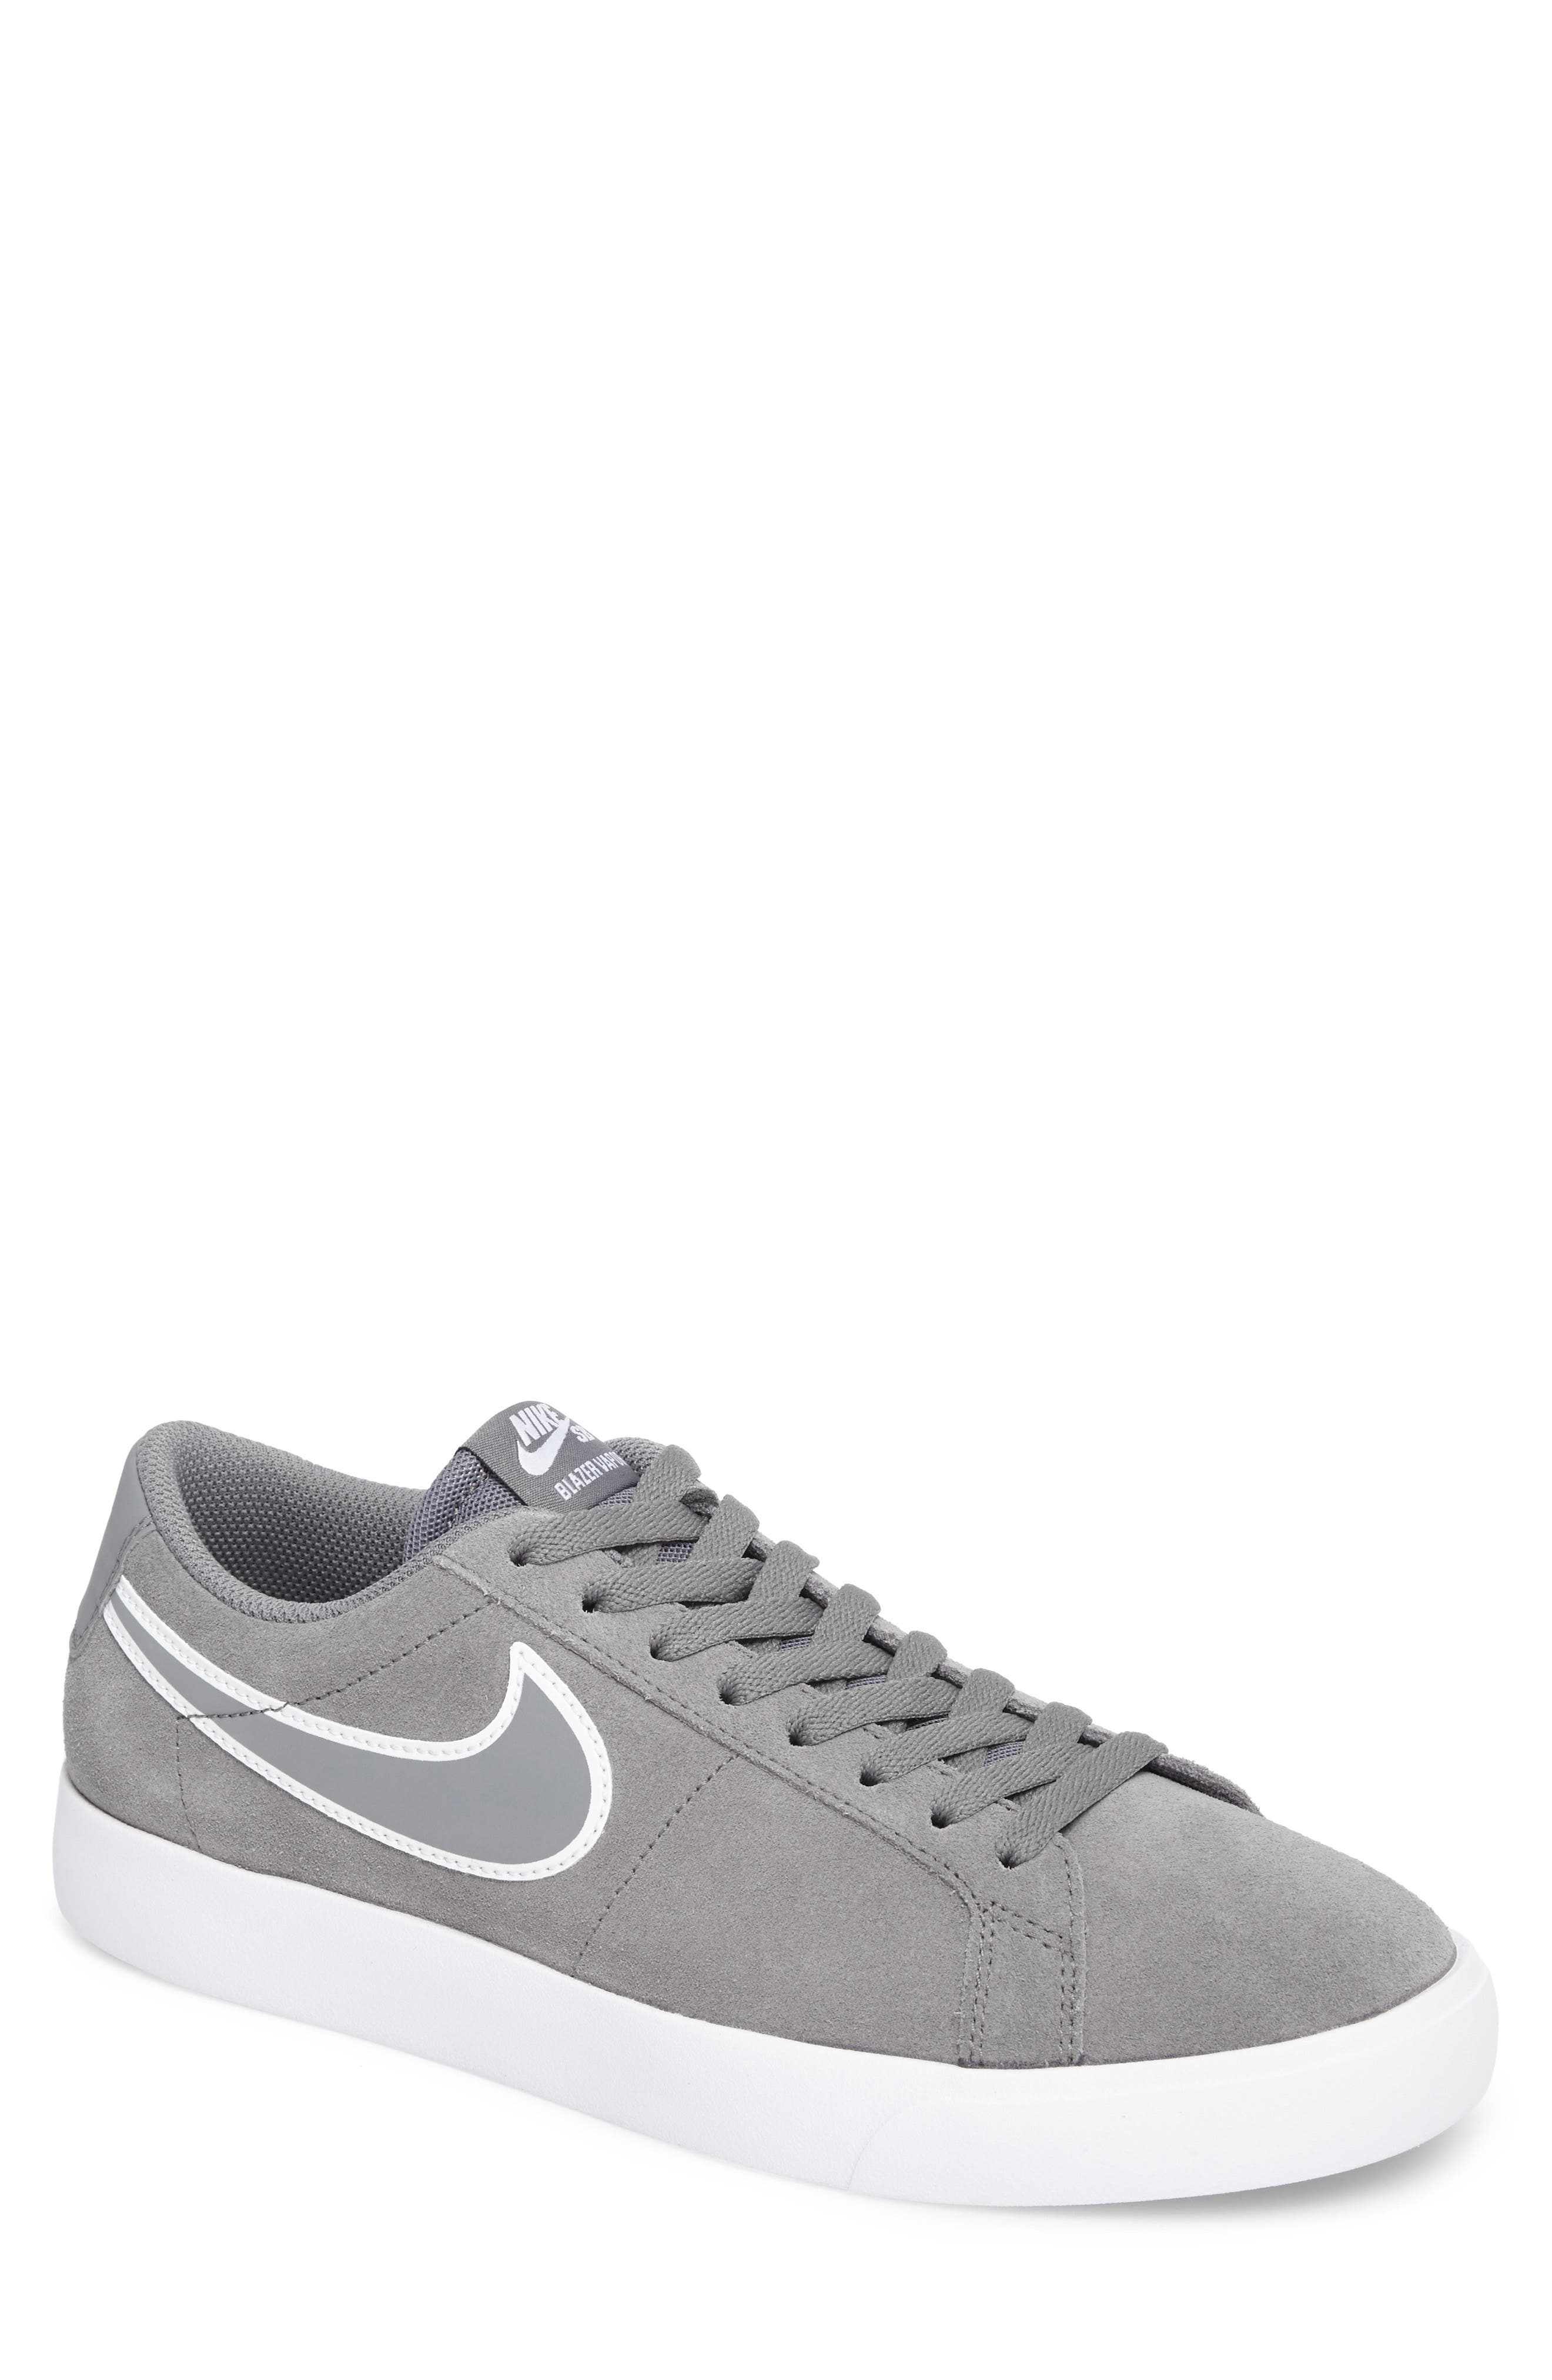 Alternate Image 1 Selected - Nike SB Blazer Vapor Skateboarding Sneaker (Men)